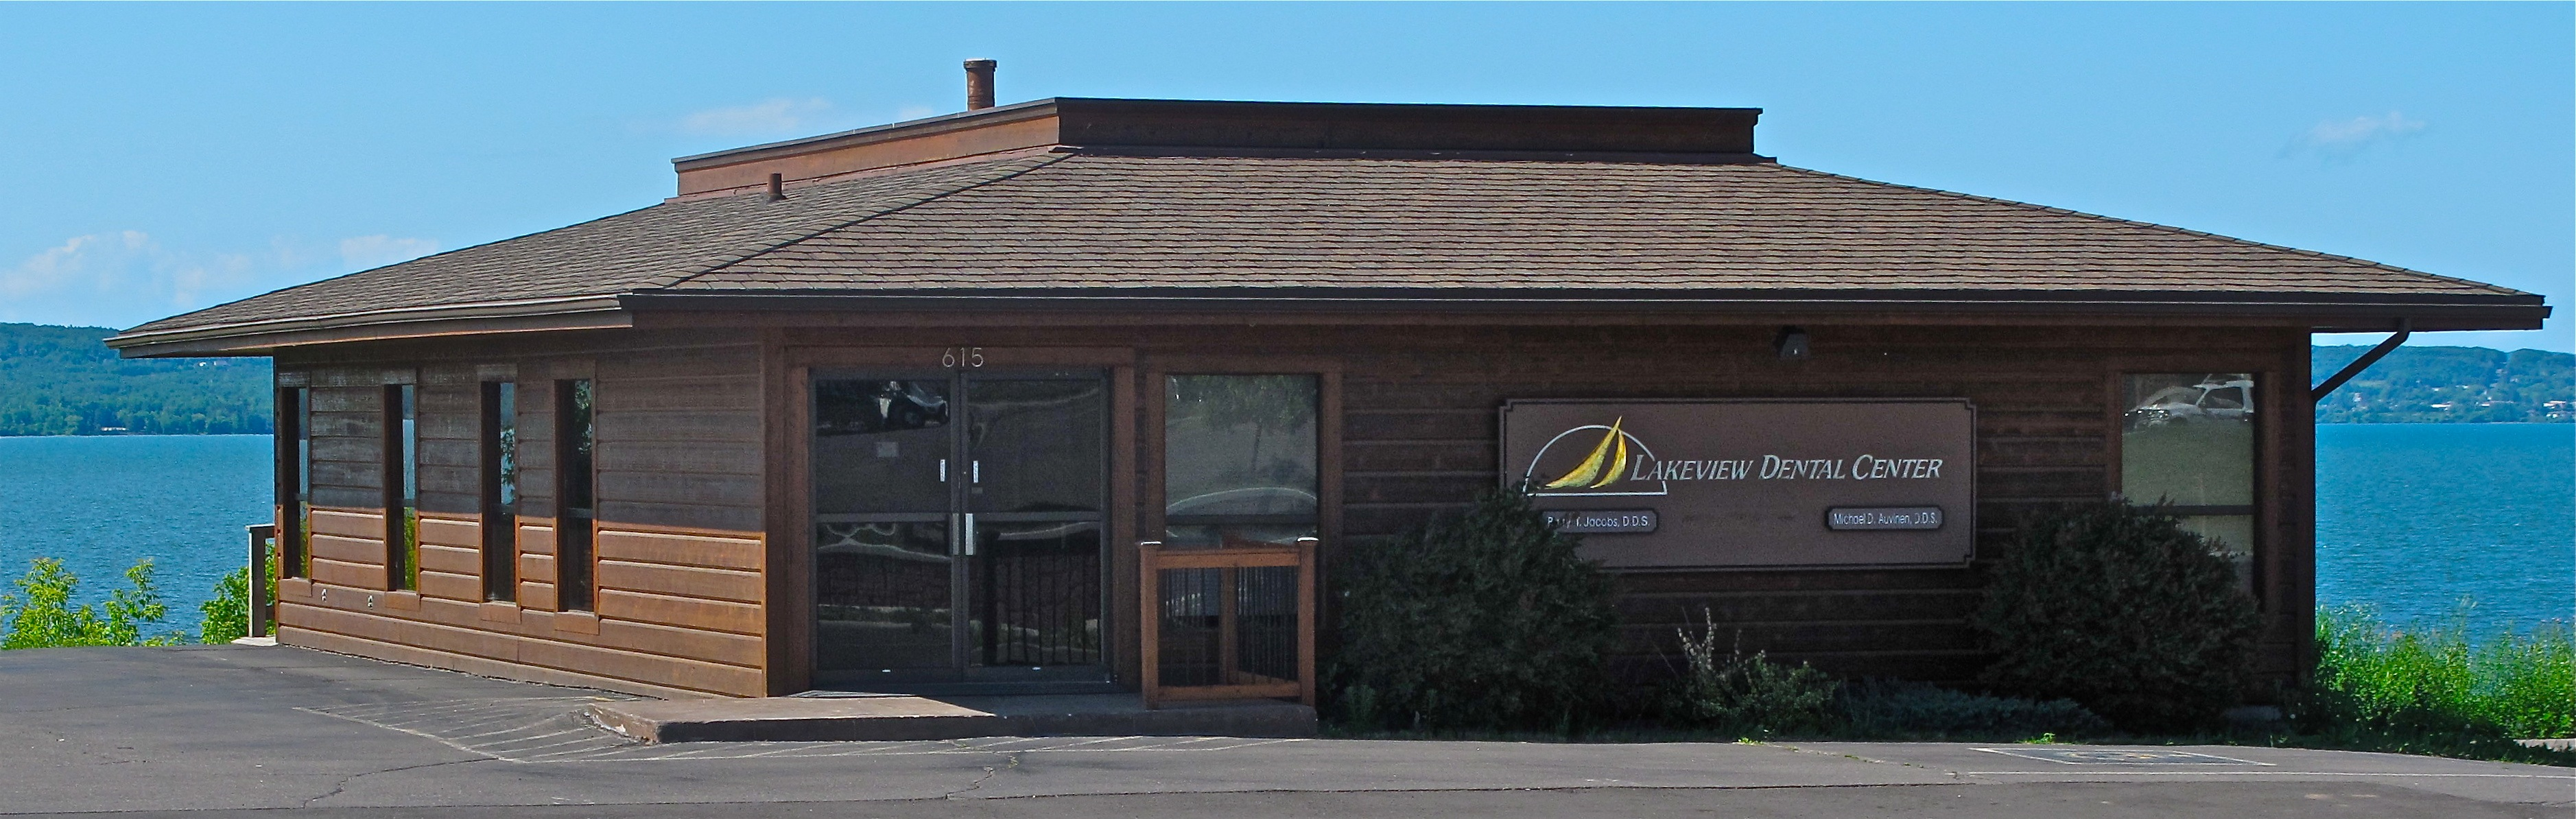 Tour The Office Ashland Wi Lakeview Dental Center